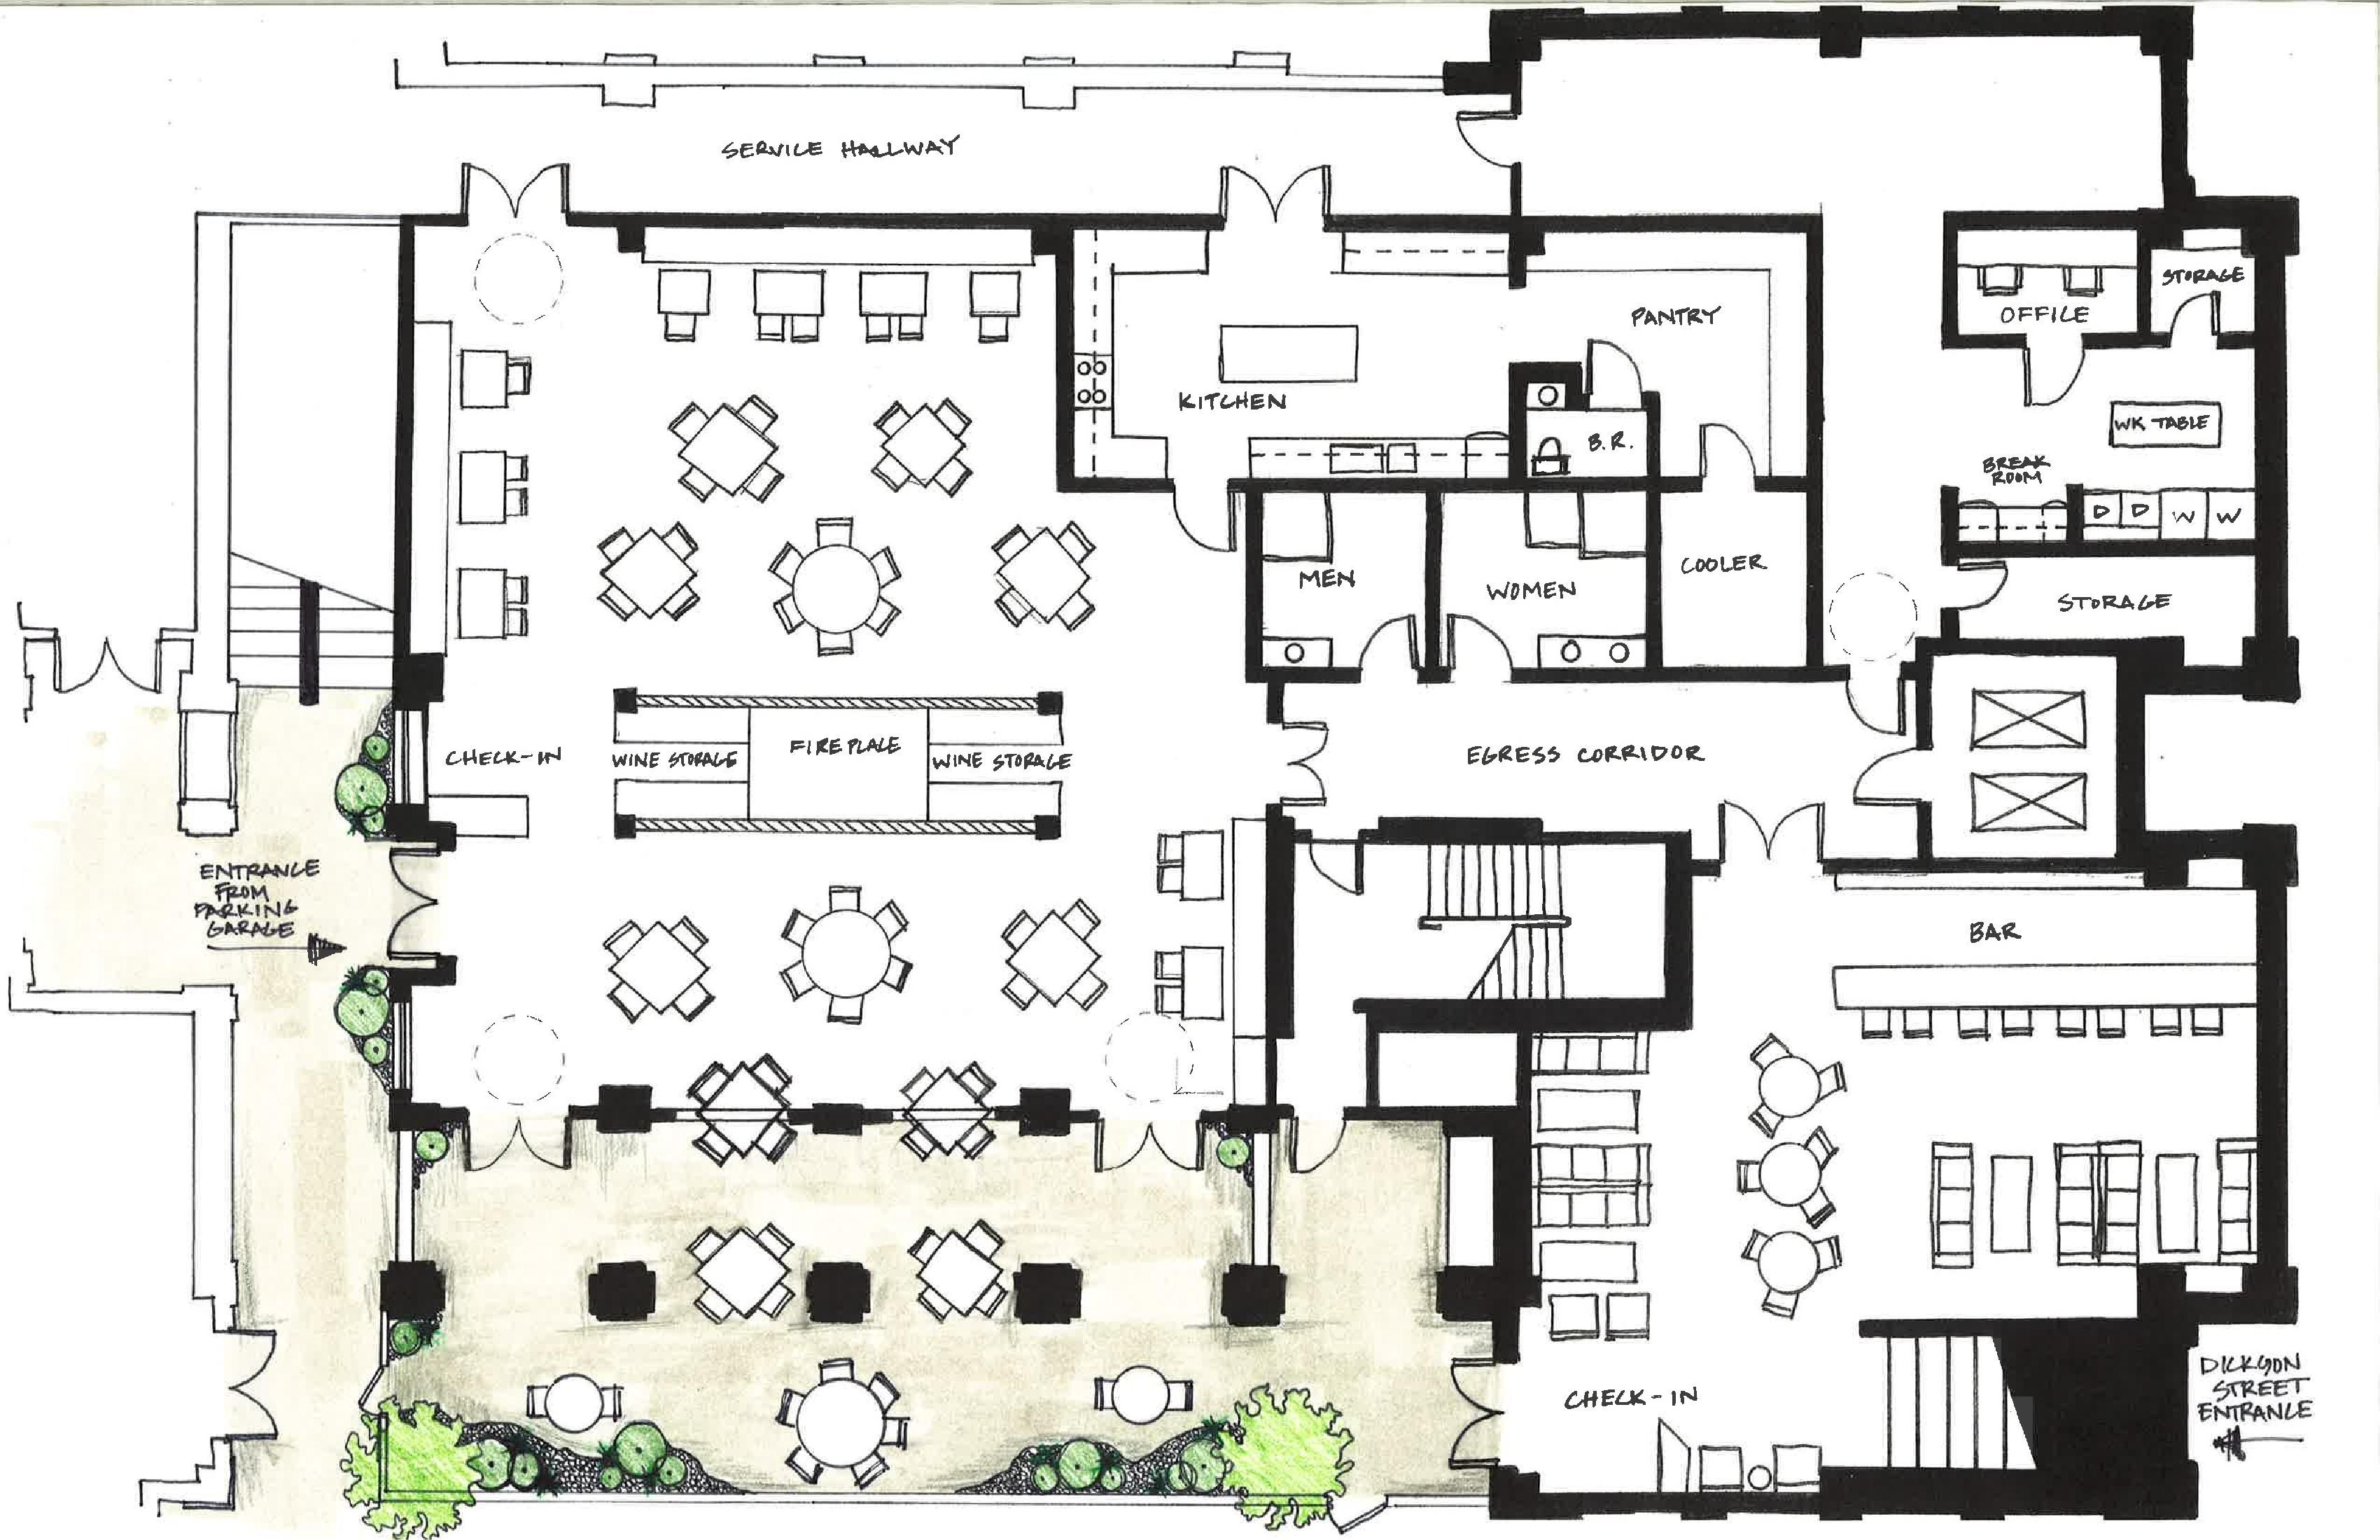 Architecture design inspired by f plan for Commercial building blueprints free